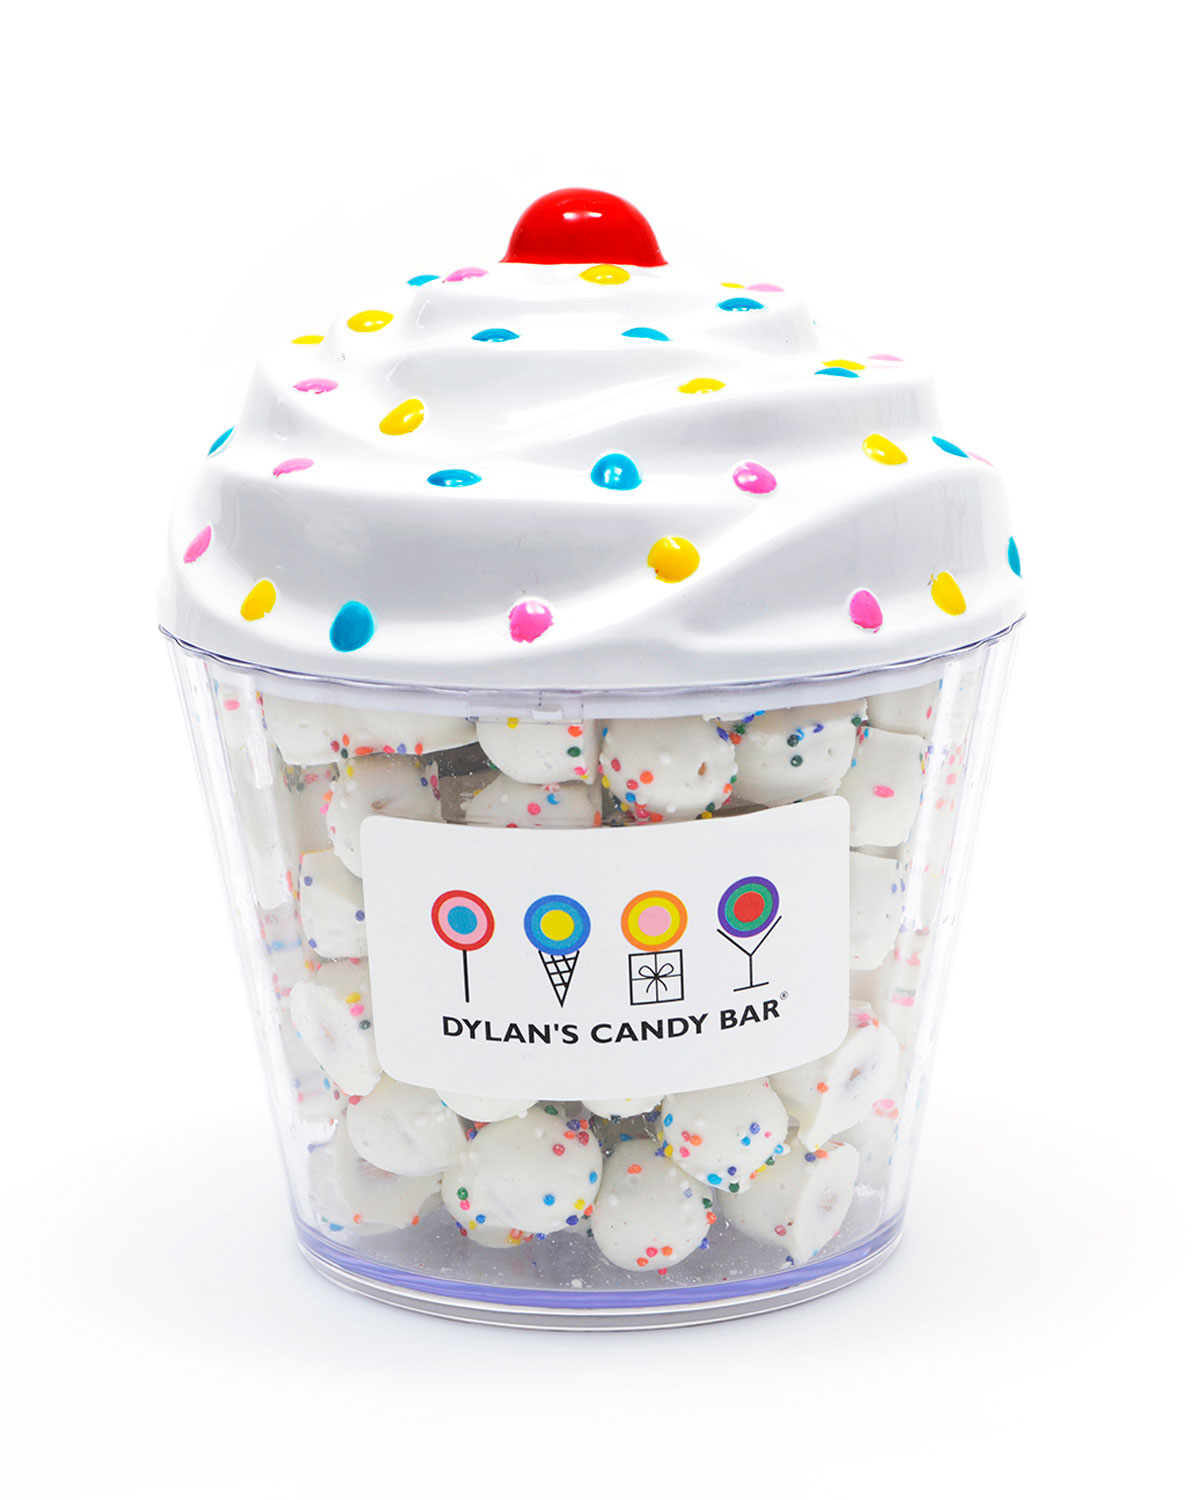 Dylan's Candy Bar Kids' Chocolate Pretzels Ball Cupcake In White